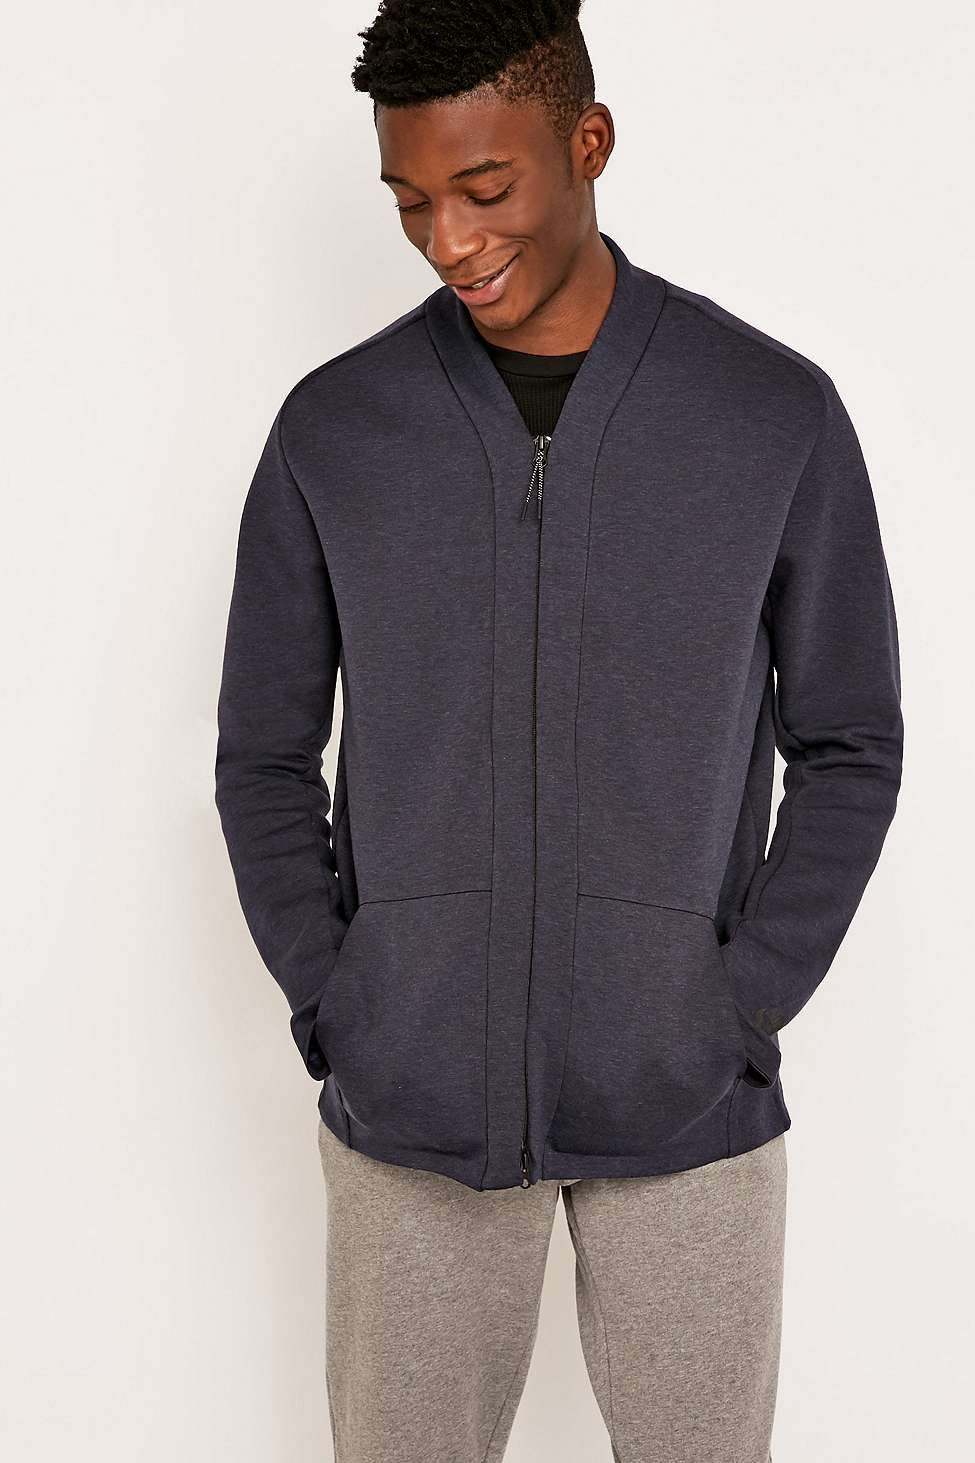 Nike Tech Fleece Obsidian Cardigan Nike tech fleece